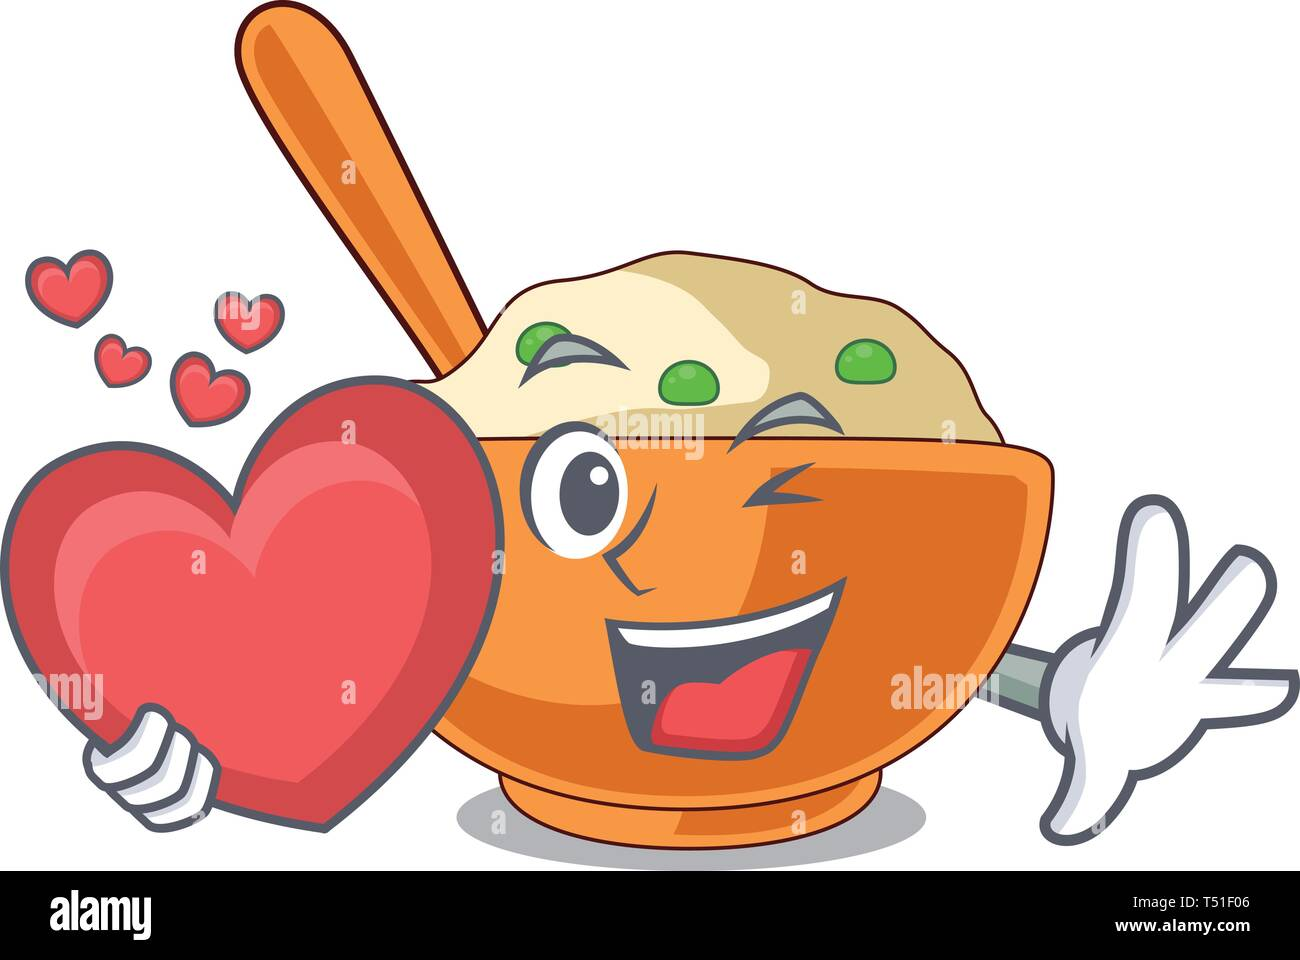 With heart mashed potato in the shape mascot - Stock Image